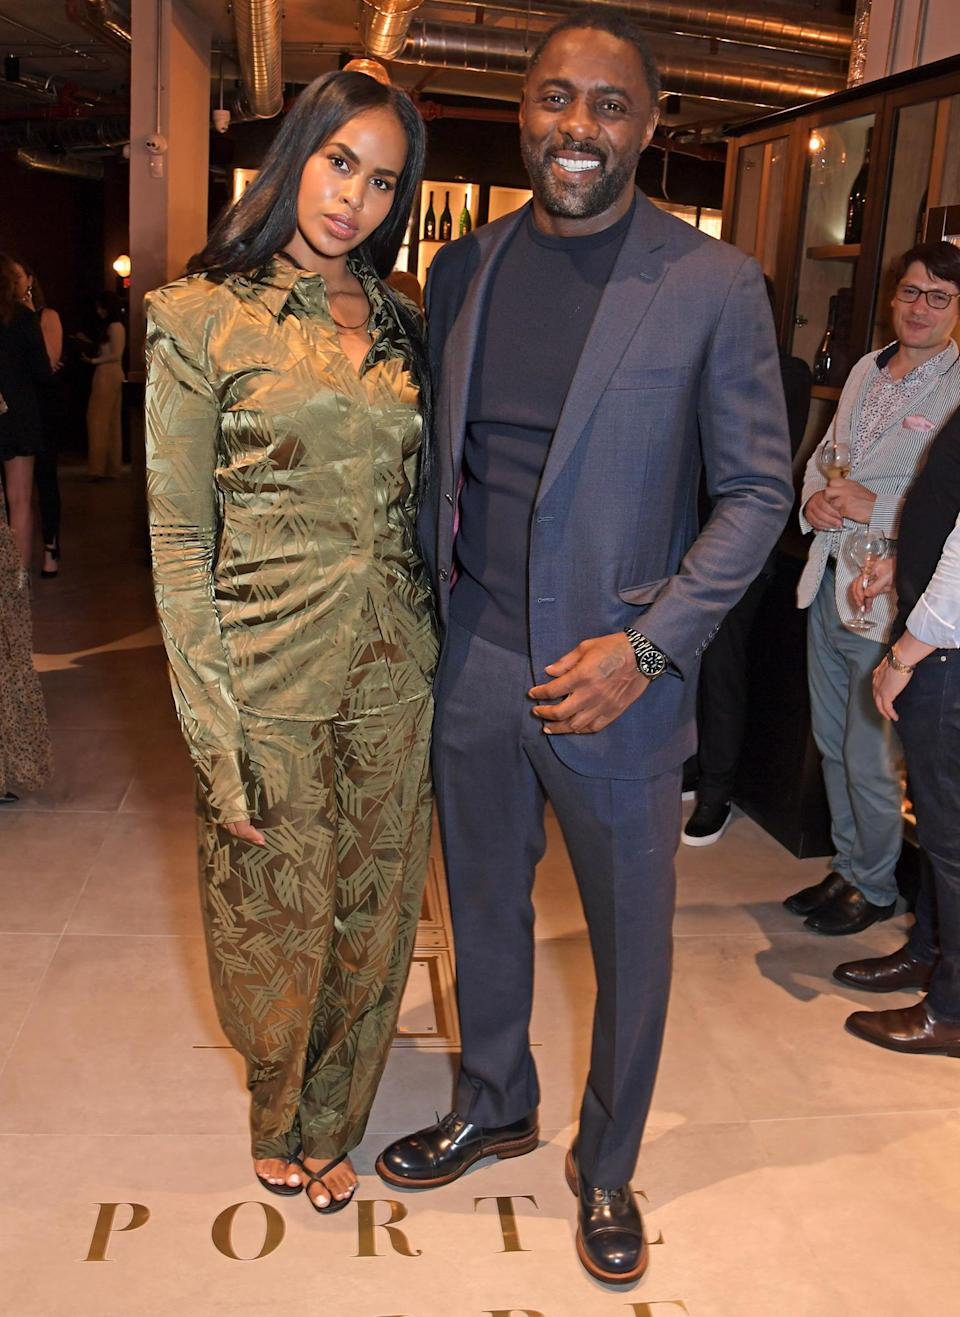 <p>Idris Elba and Sabrina Dhowre continue their stylish week out on Oct. 8 for the launch of the actor's new Port Noire Bar and Shop, in partnership with David Farber, in London's Coal Drops Yard.</p>